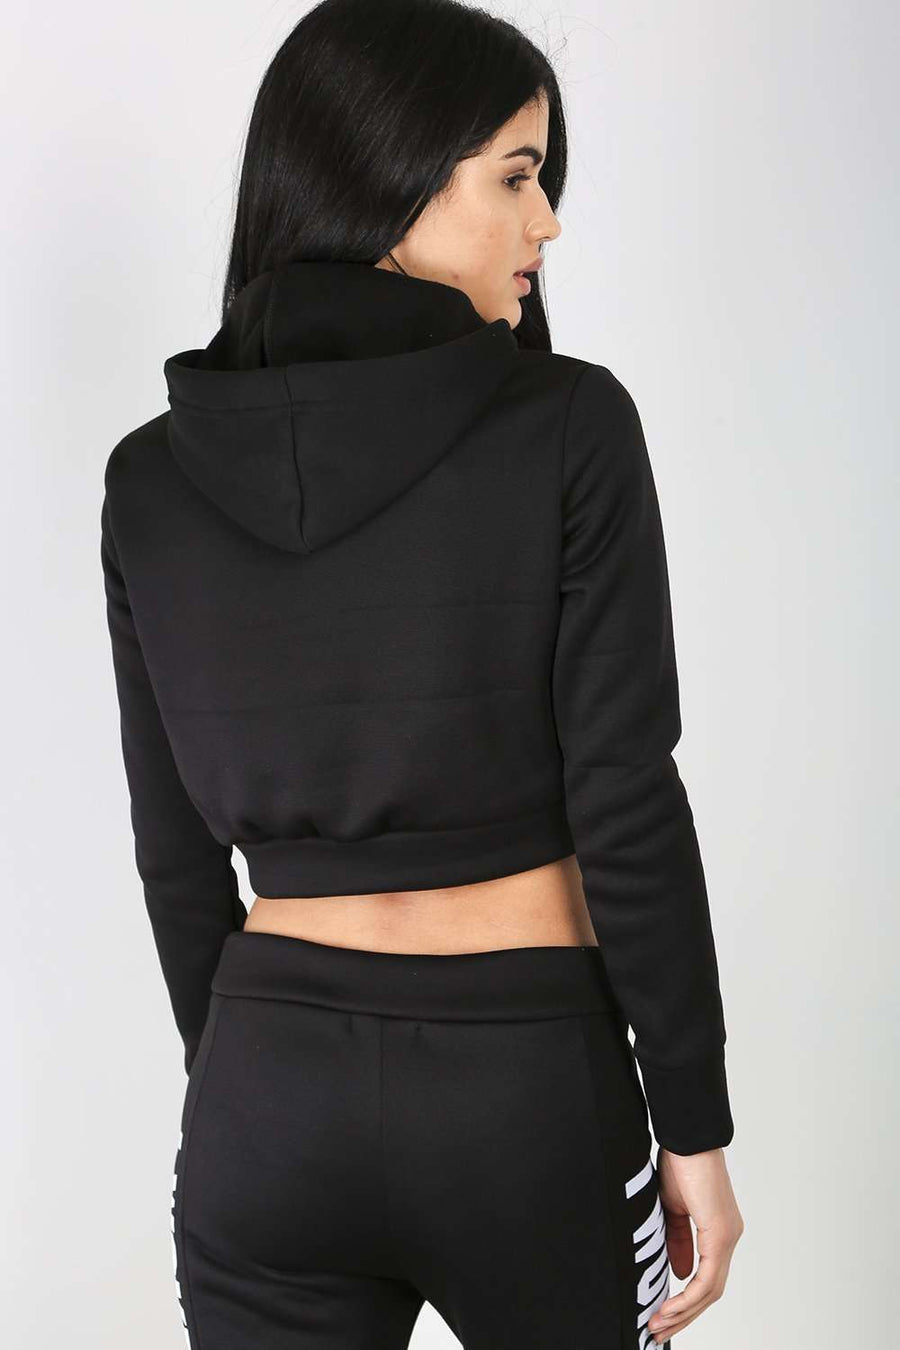 Emily Slogan Cropped Sweater - bejealous-com